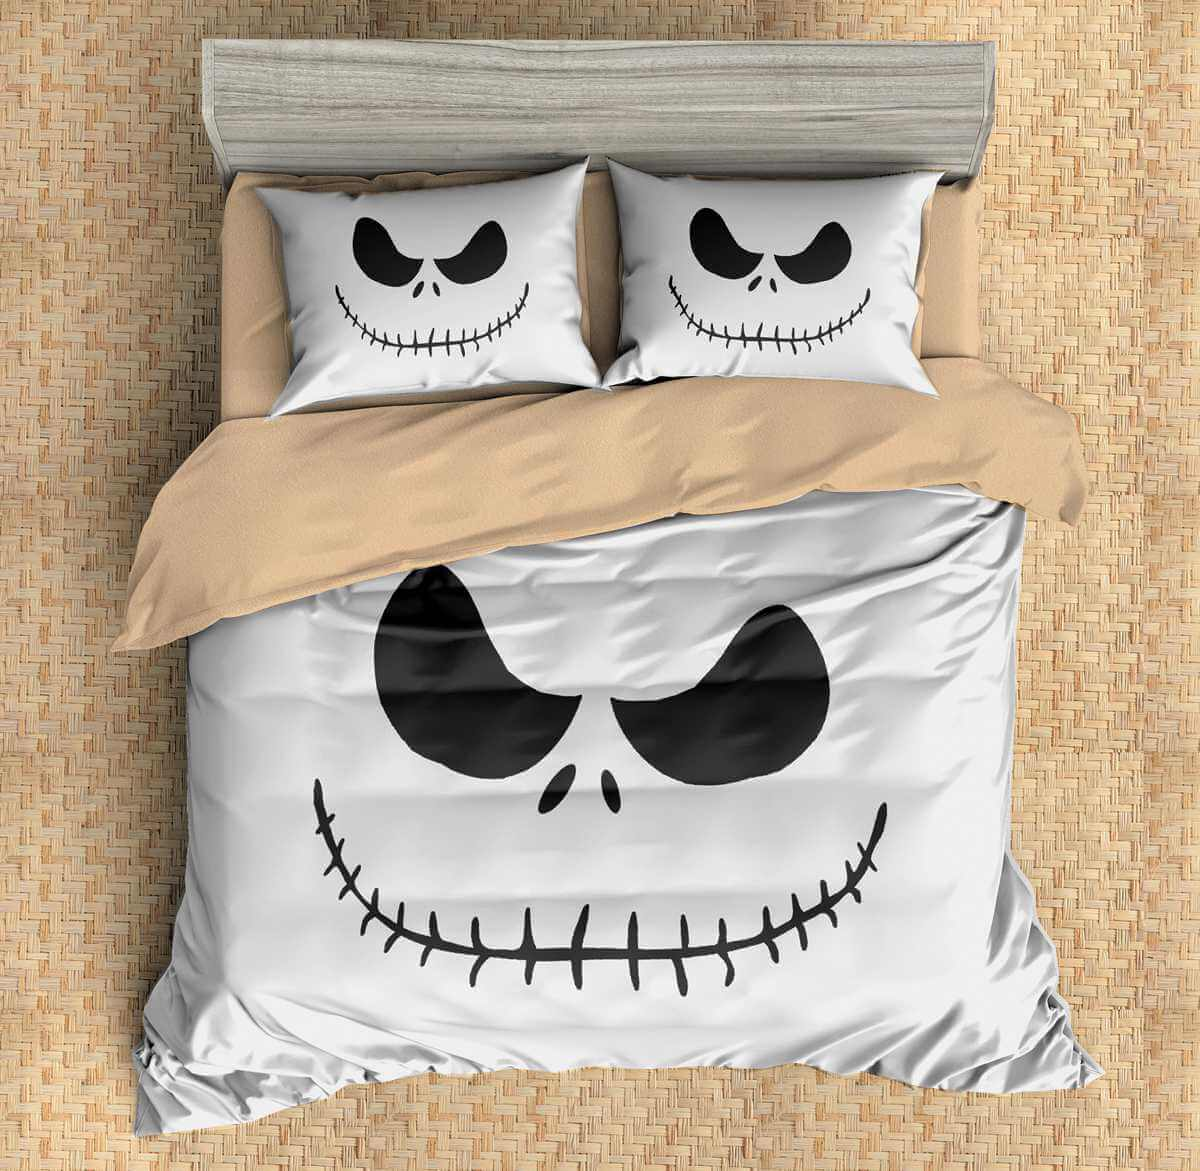 3d customize the nightmare before christmas bedding set duvet cover set bedroom set bedlinen - Nightmare Before Christmas Bedding Queen